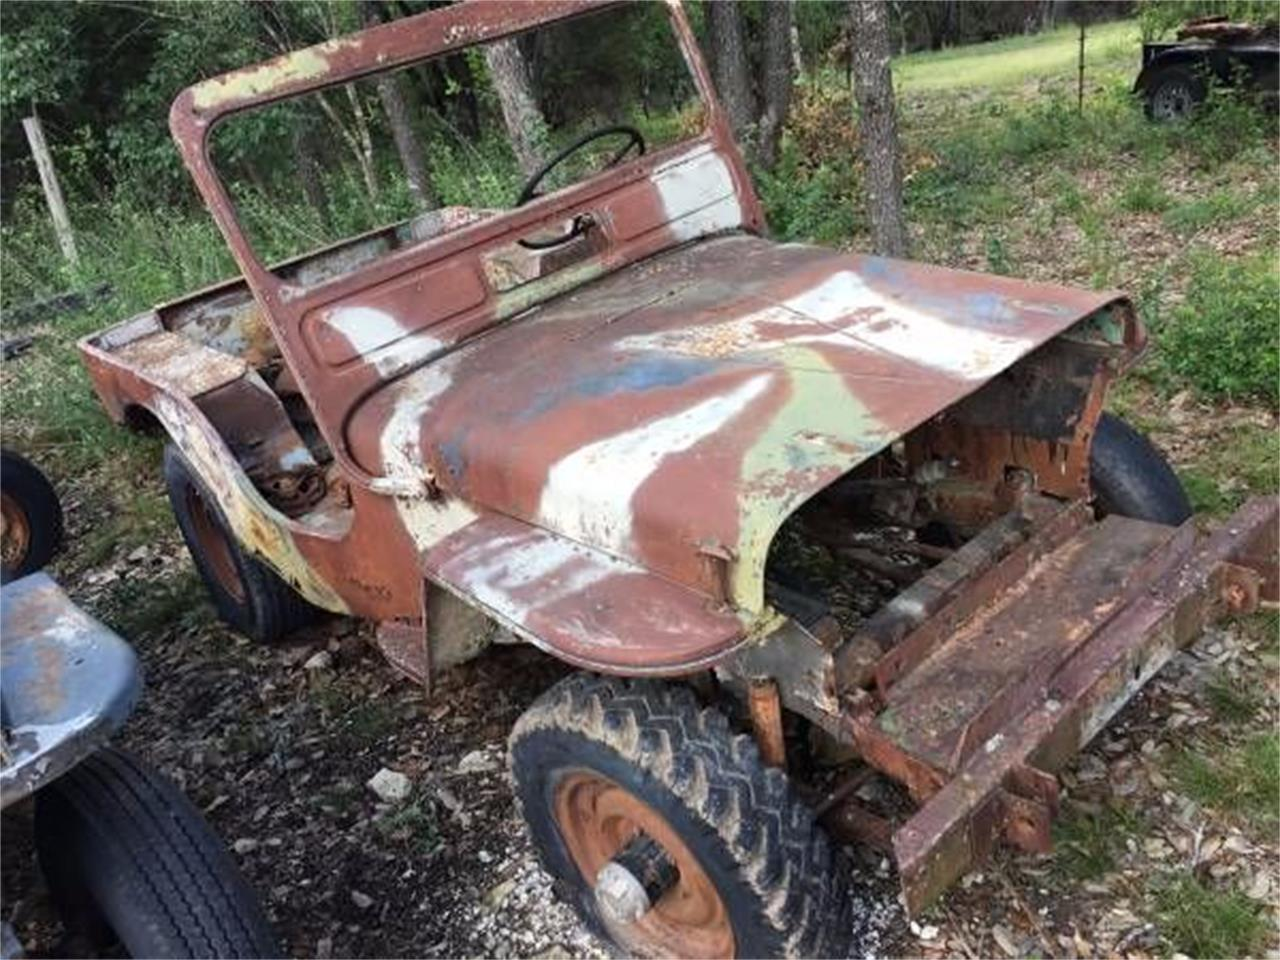 1947 Willys Jeep for sale in Cadillac, MI – photo 7